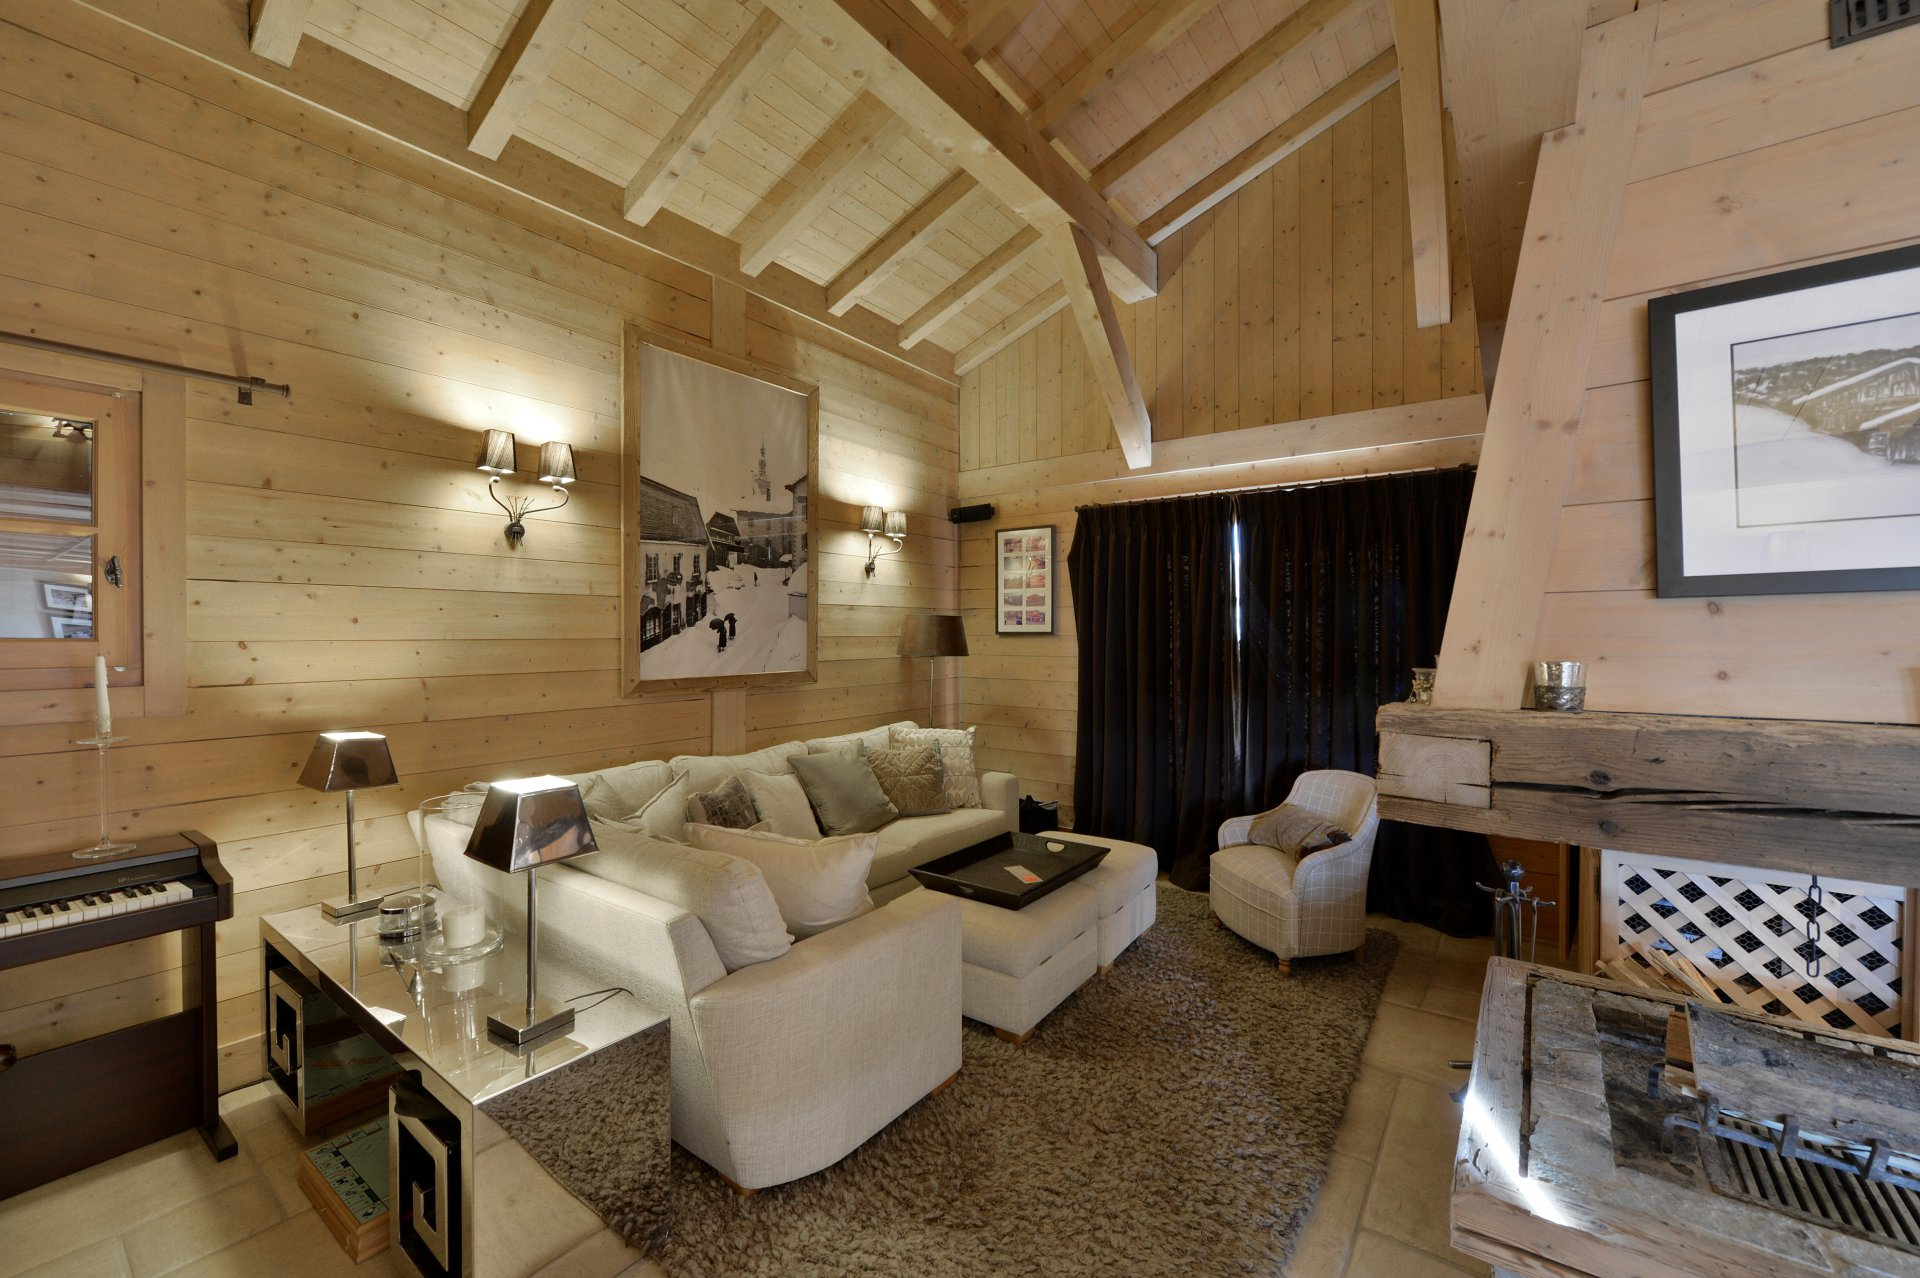 Chalet White Chalet in Megeve